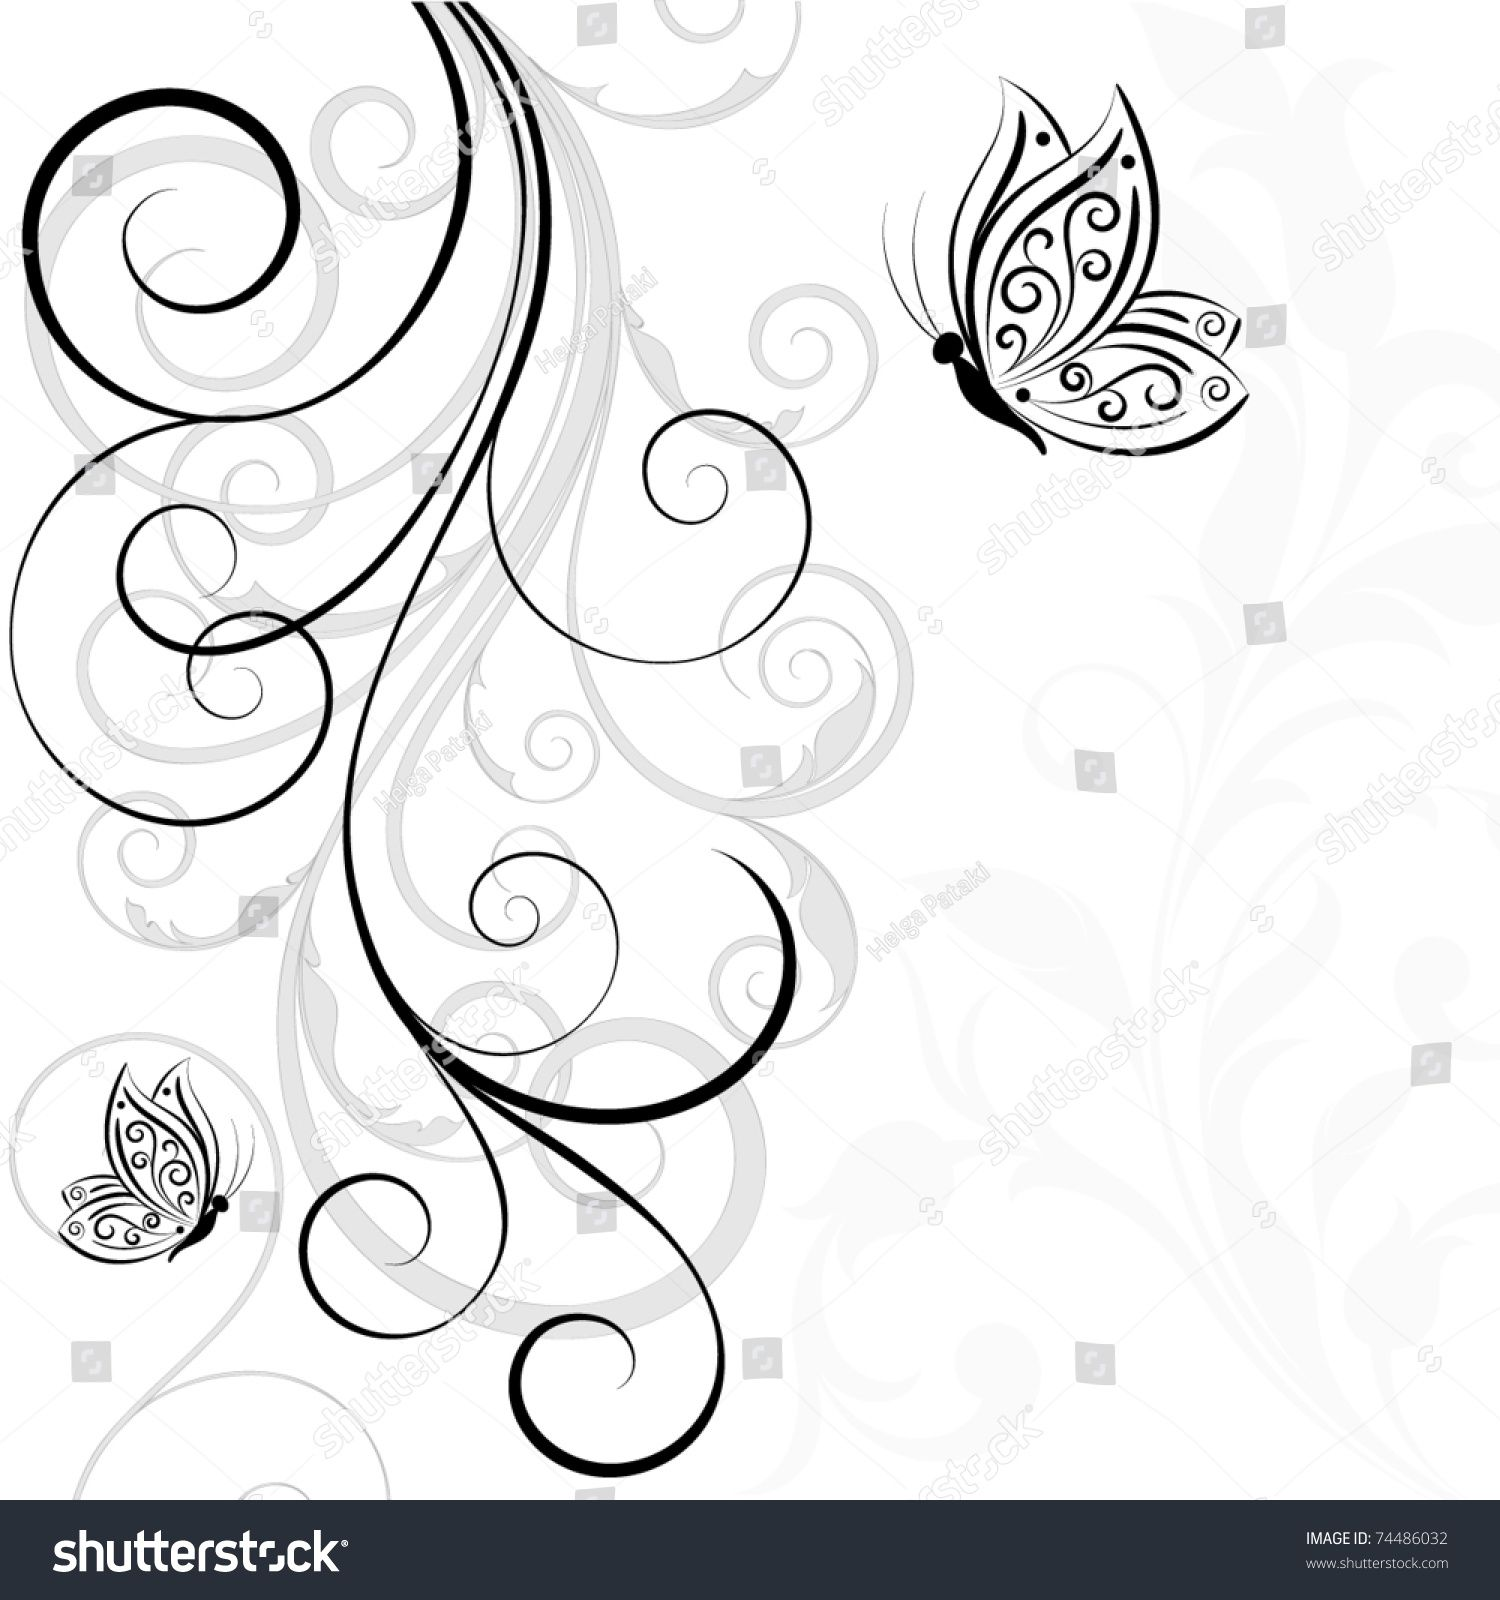 Abstract Floral Background Vector Ad Sponsored Floral Abstract Vector Background Floral Background Abstract Floral Abstract